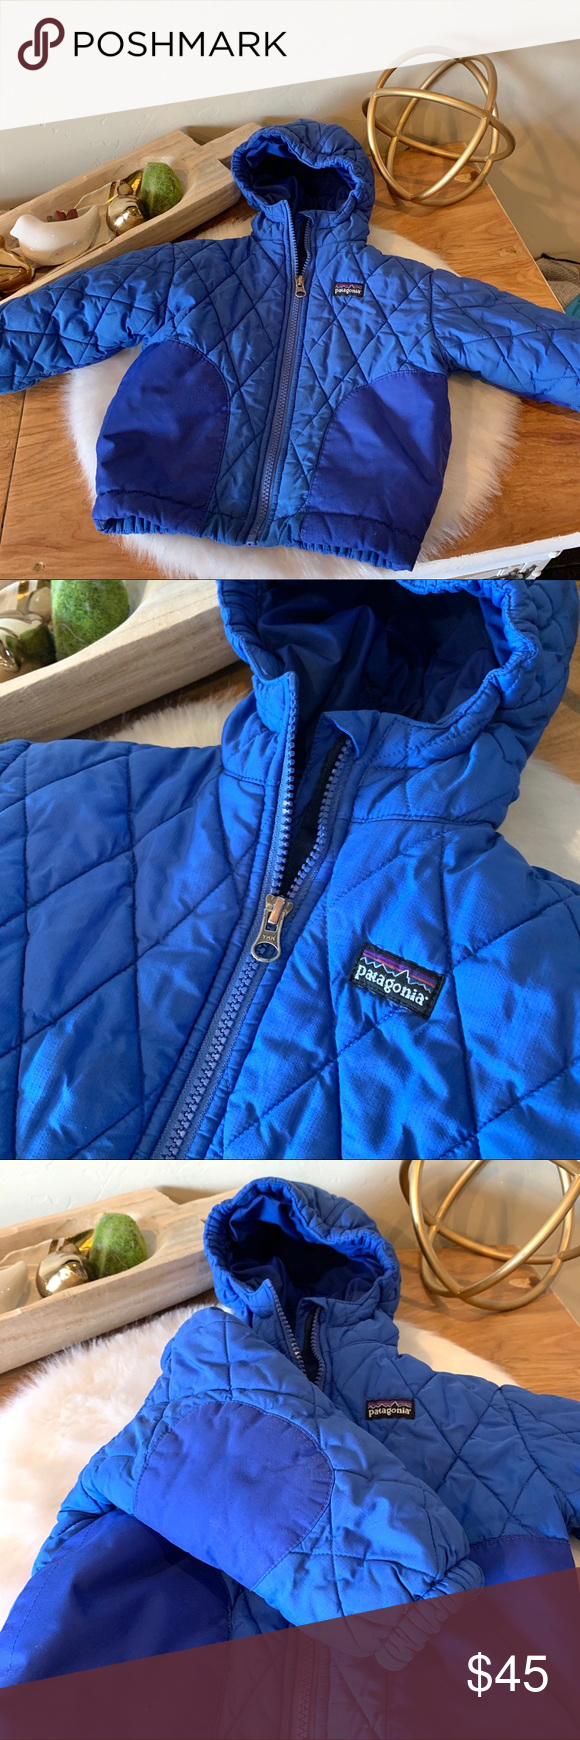 Patagonia baby puffer bomber jacket (With images) Baby